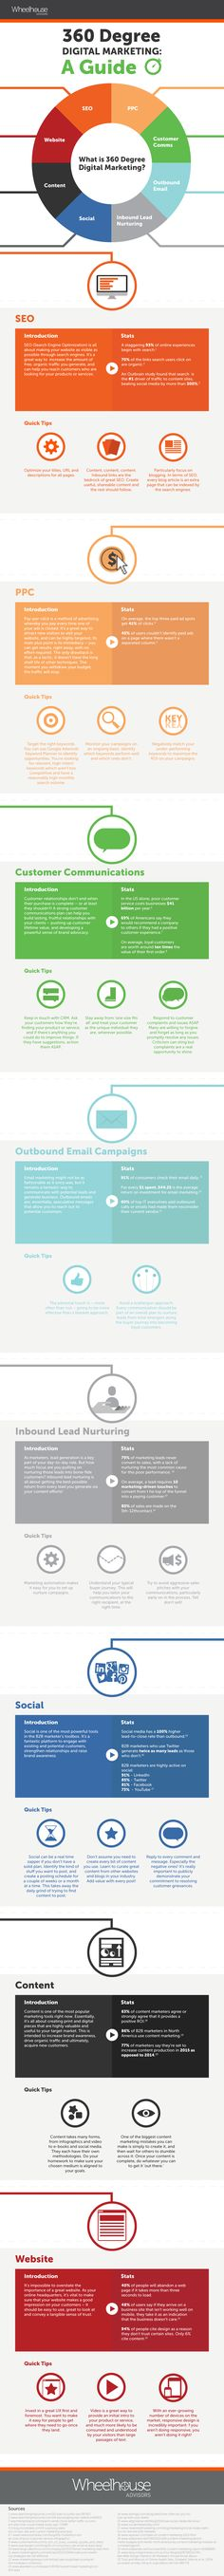 How to Create a 360-Degree Digital Marketing Strategy [Infographic] | Social Media Today